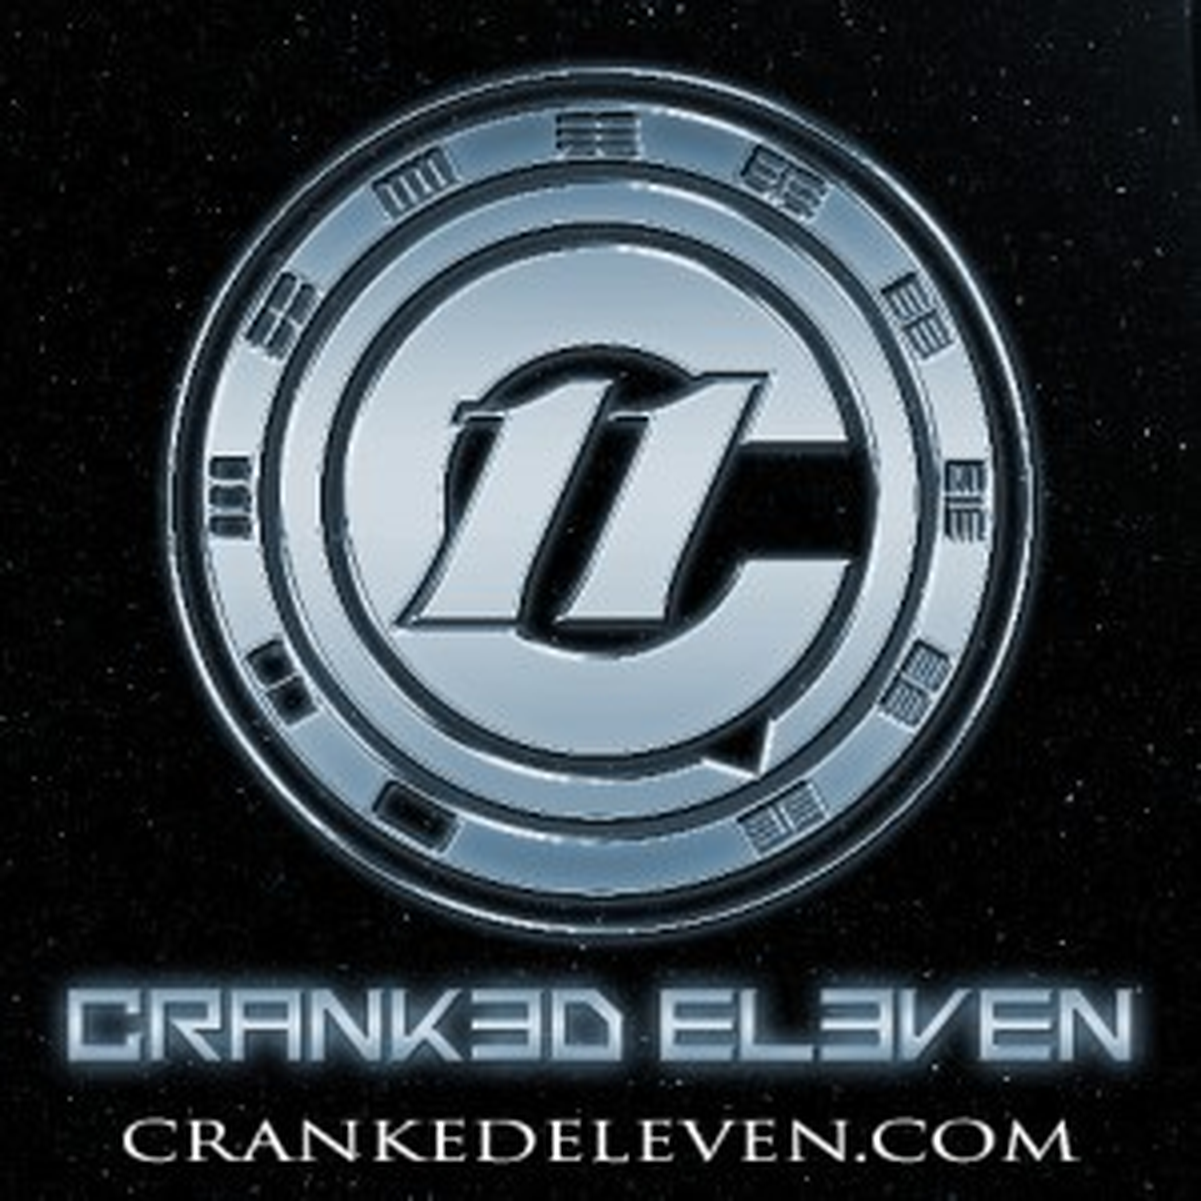 Cranked Eleven wiki, Cranked Eleven review, Cranked Eleven history, Cranked Eleven news